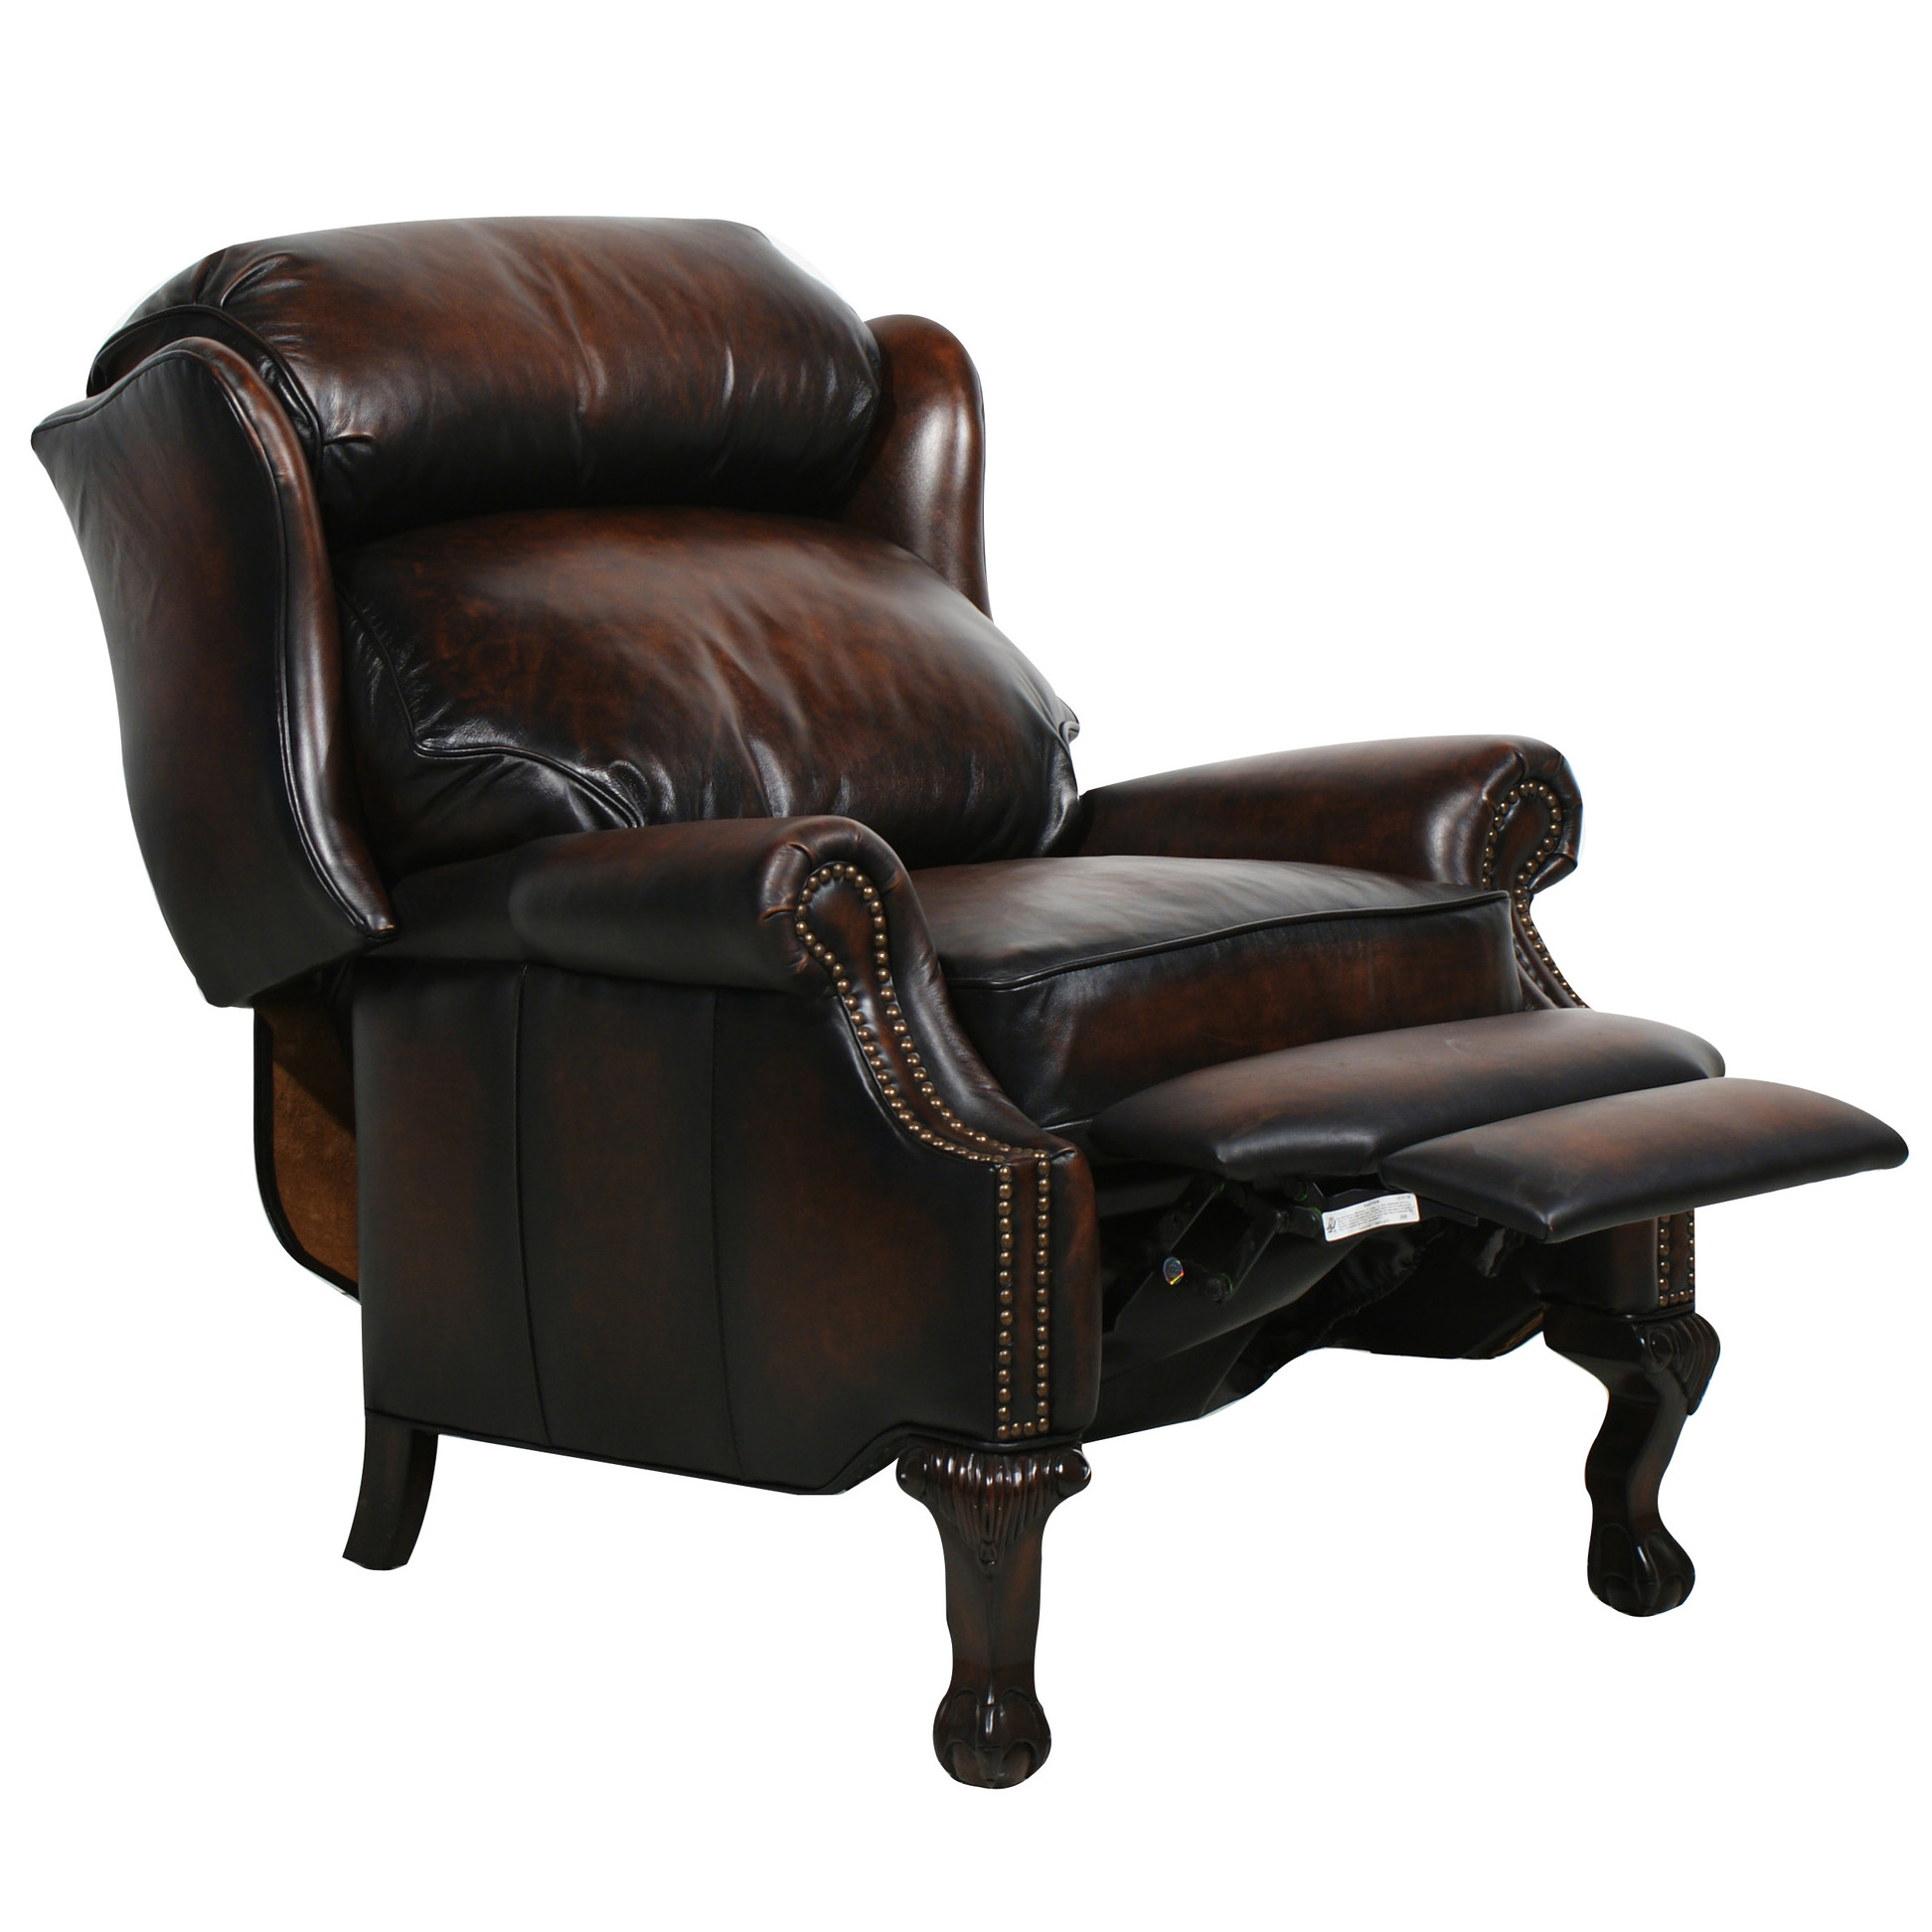 Barcalounger Danbury II Recliner Chair Leather